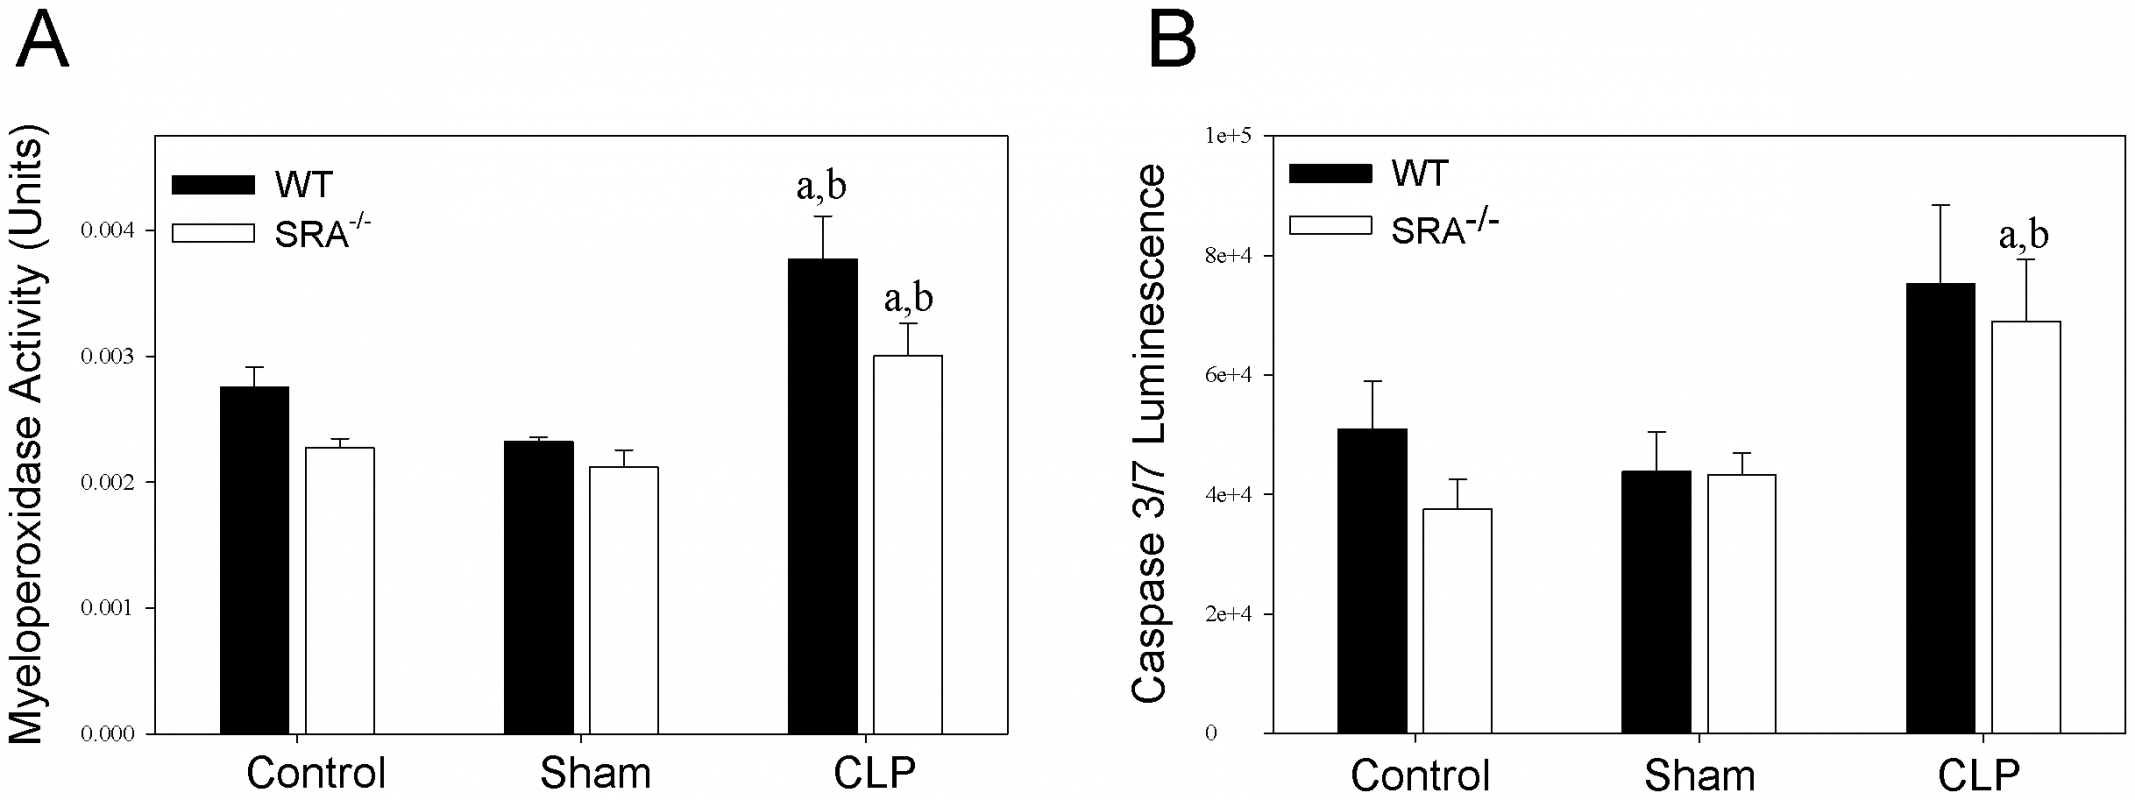 SRA deficiency had no effect on pulmonary neutrophil infiltration or splenocyte apoptosis during sepsis.